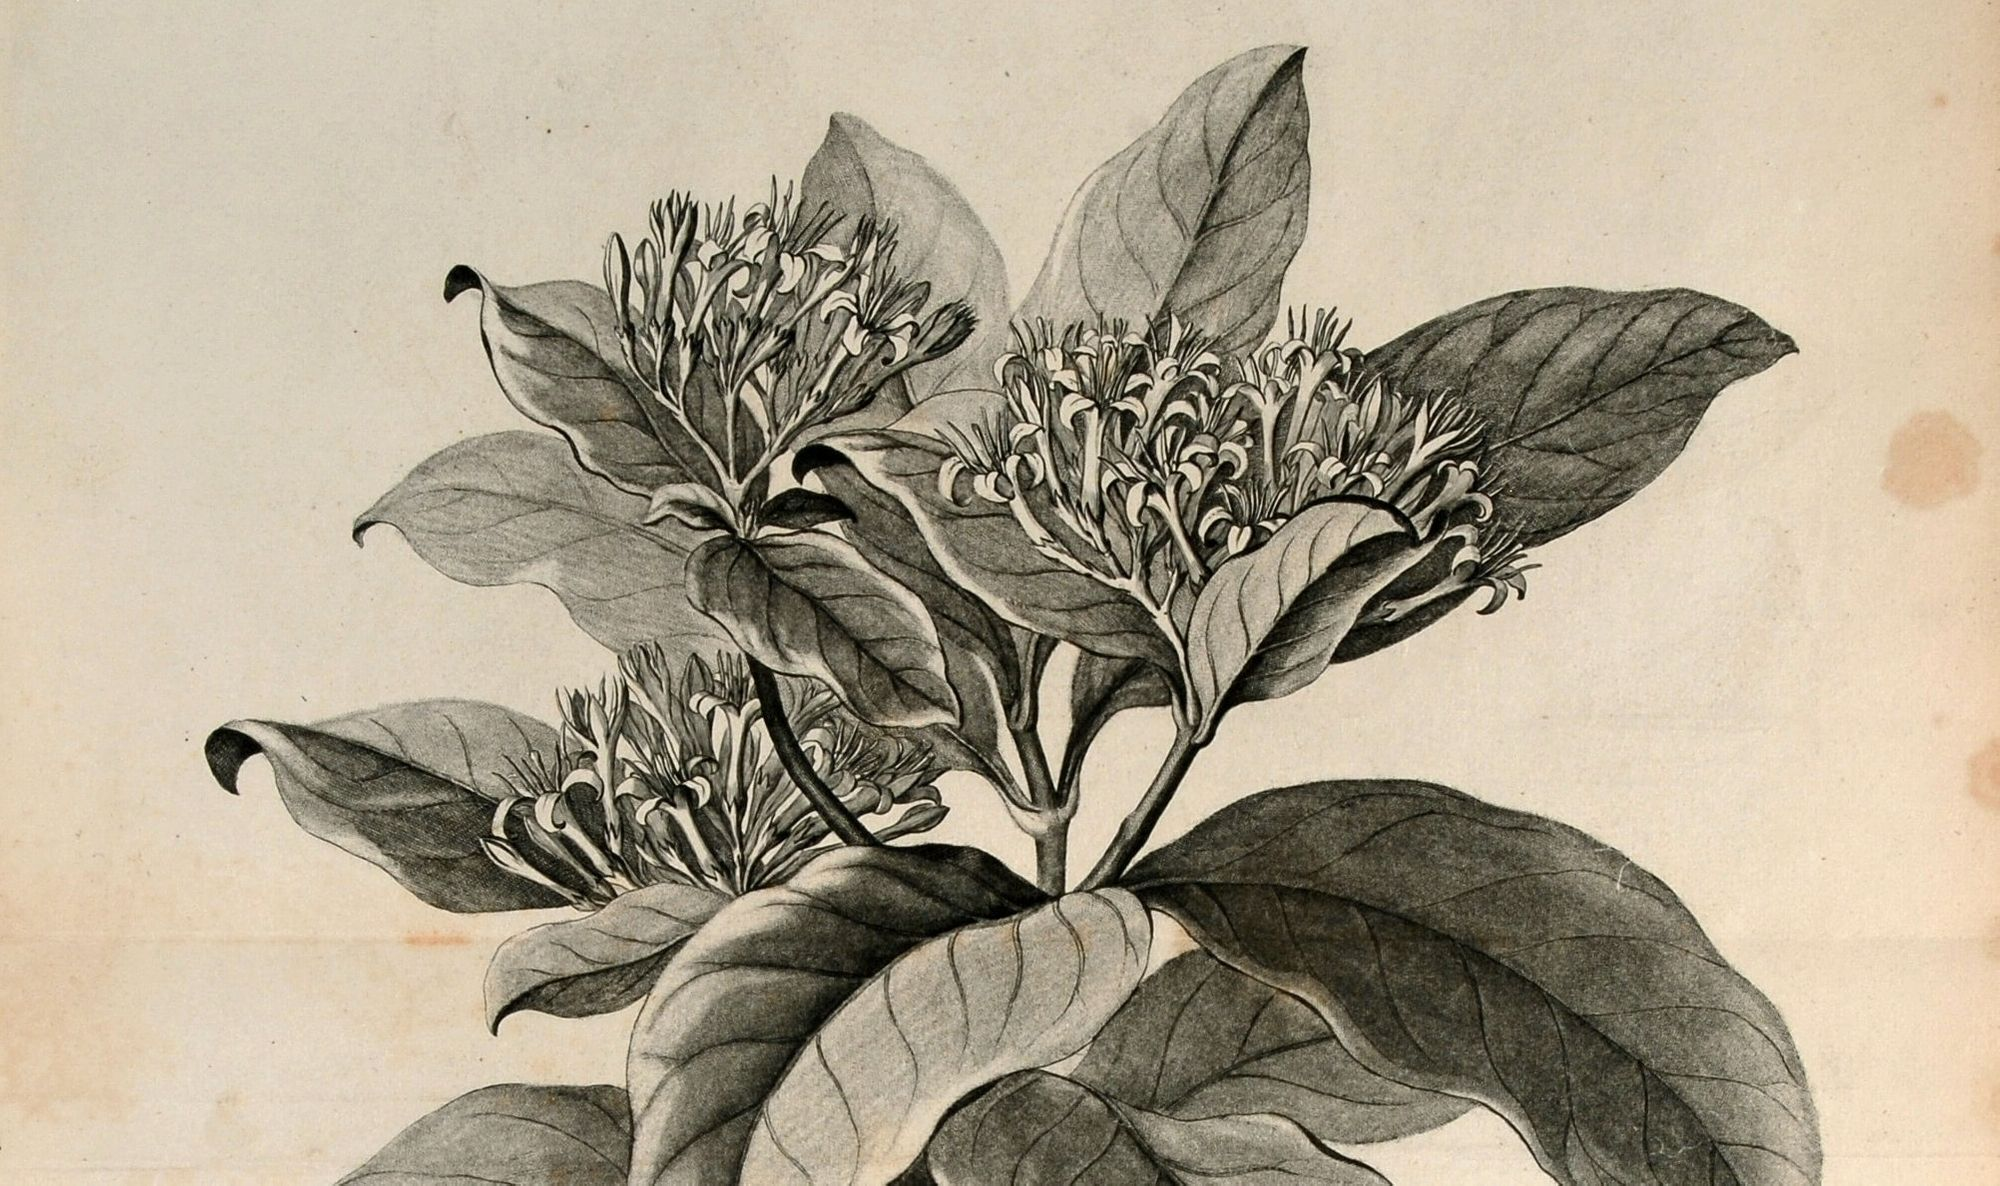 Scientific American Blog: How Have Plants Shaped Societies?